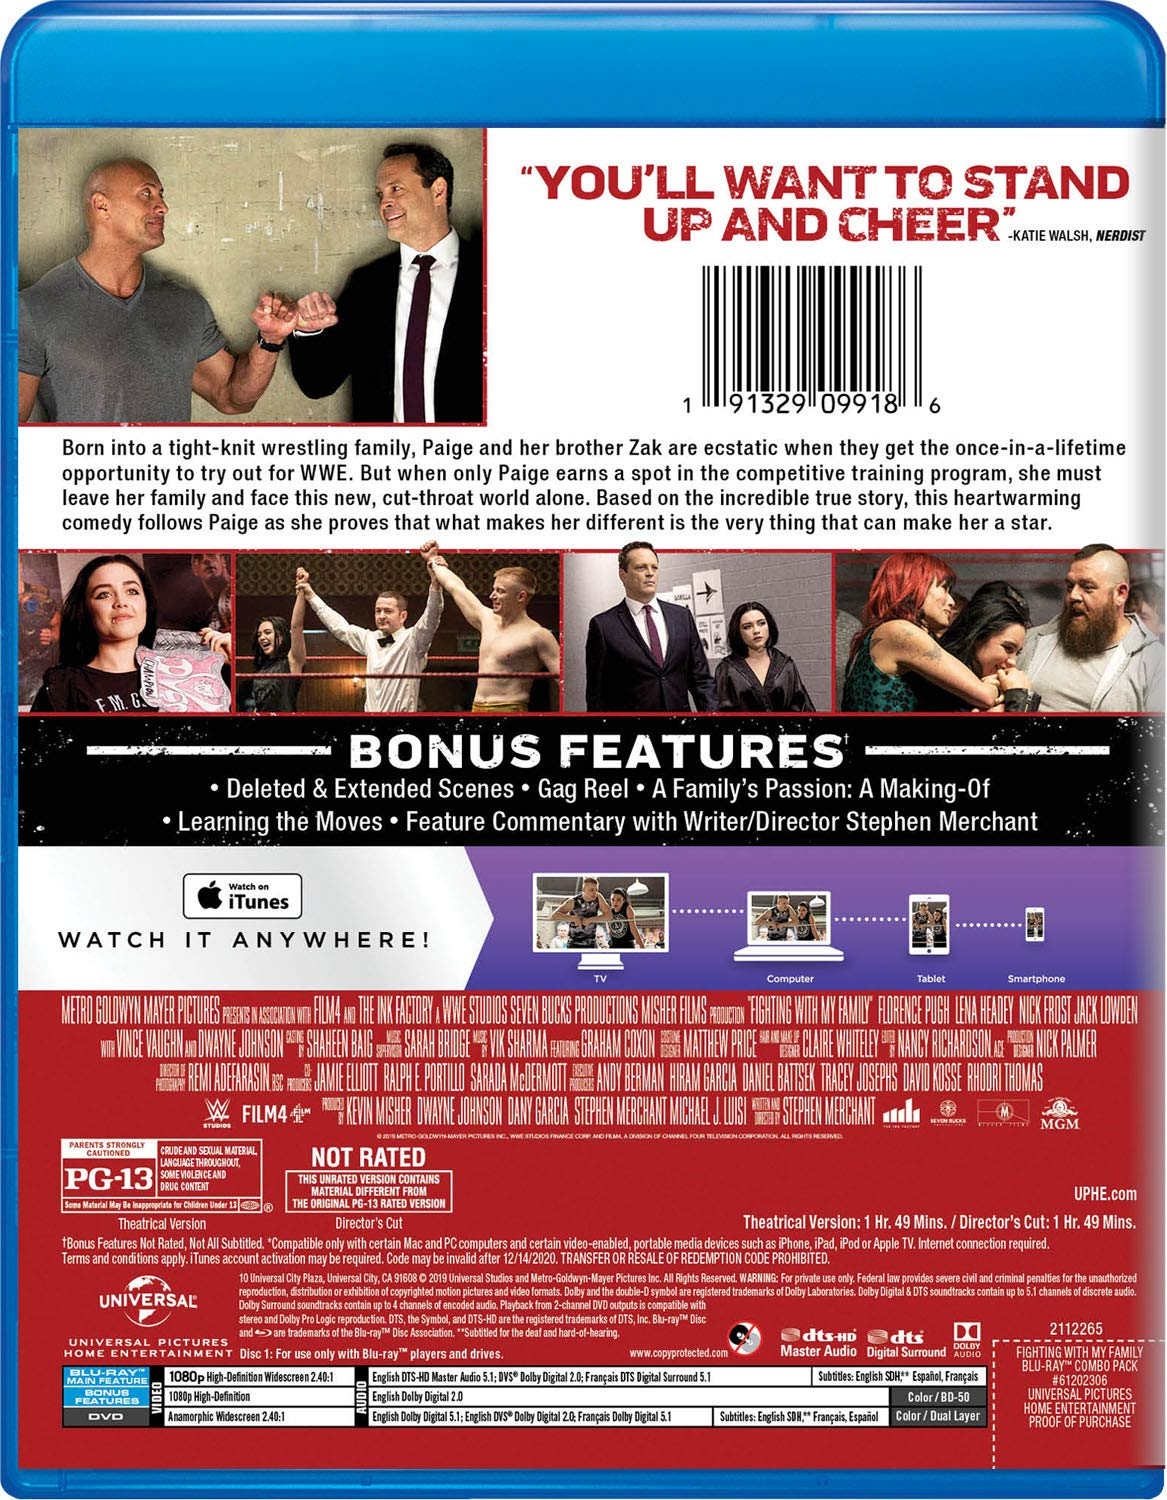 Fighting With My Family [Blu-ray]: Dwayne Johnson, Thomas Whilley